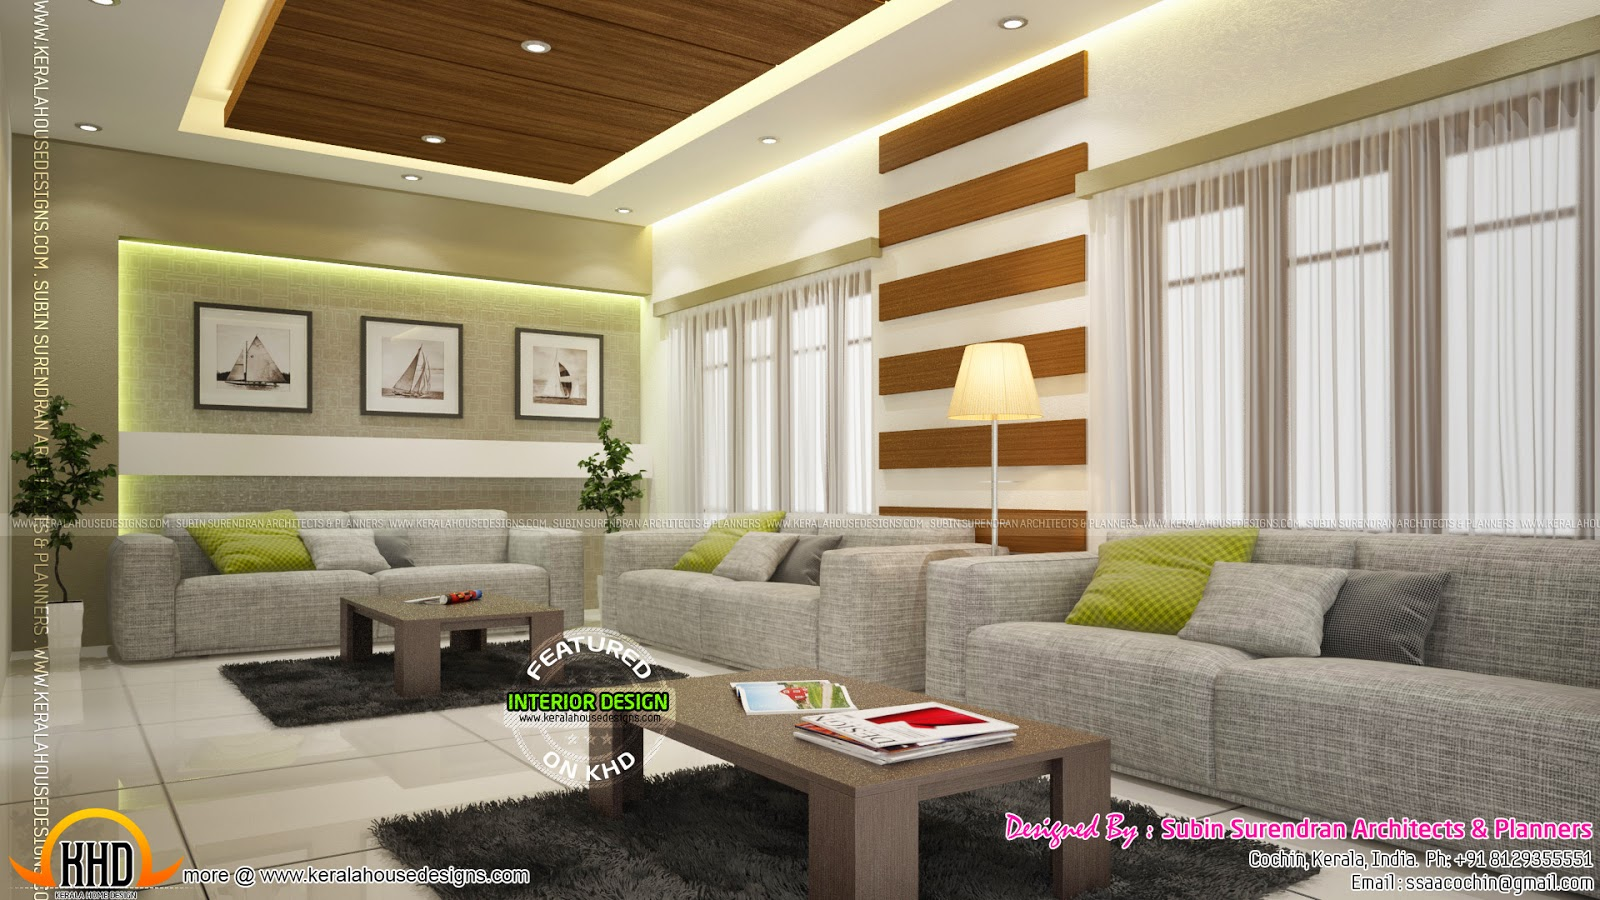 Beautiful home interior designs kerala home design and floor plans Beautiful living rooms